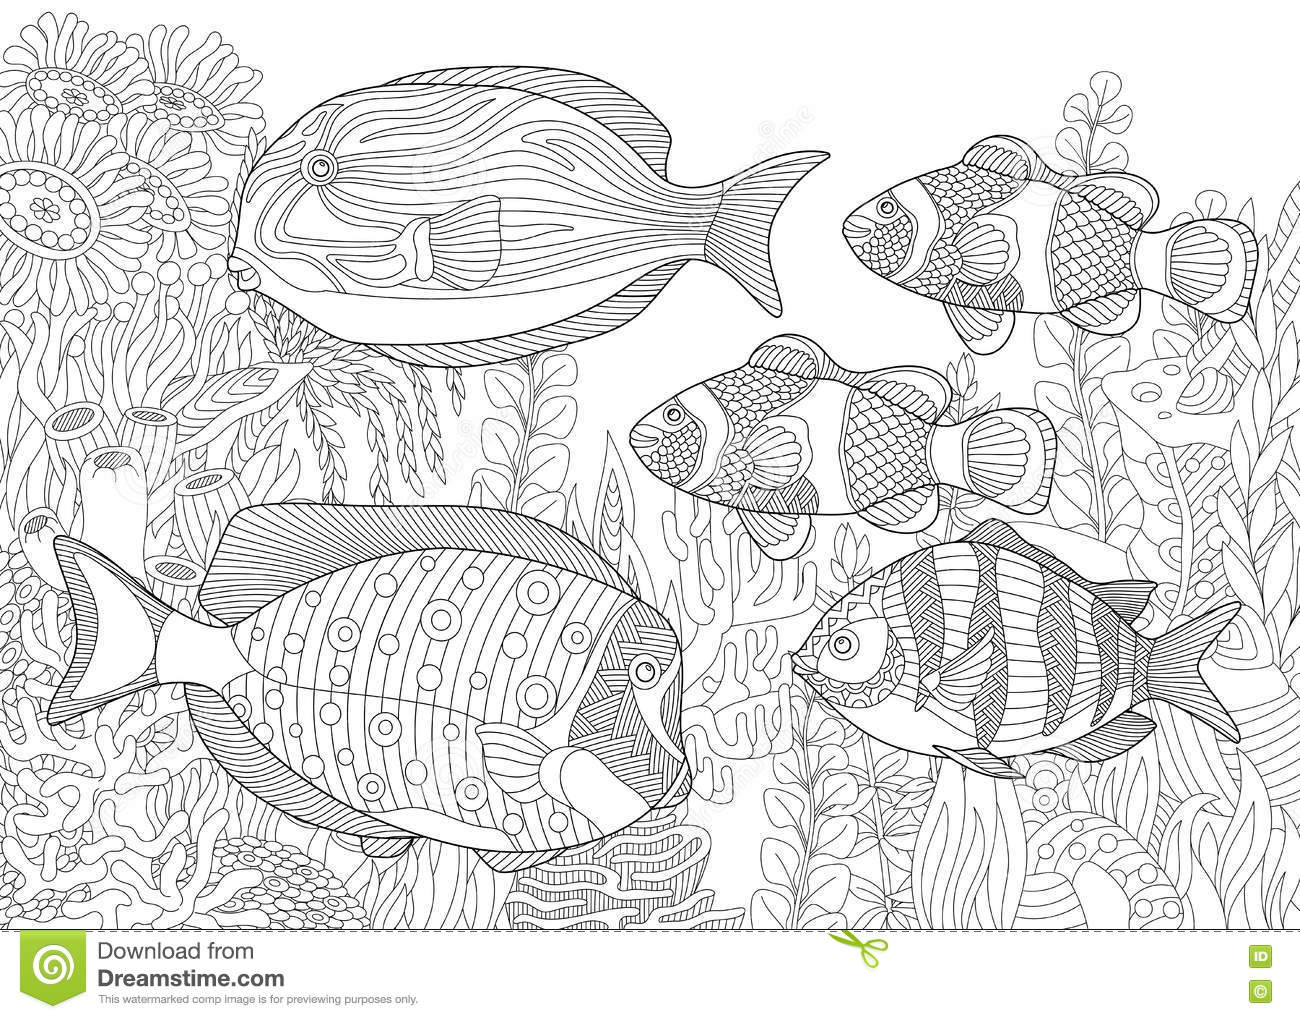 aquarium plants coloring pages - photo#19